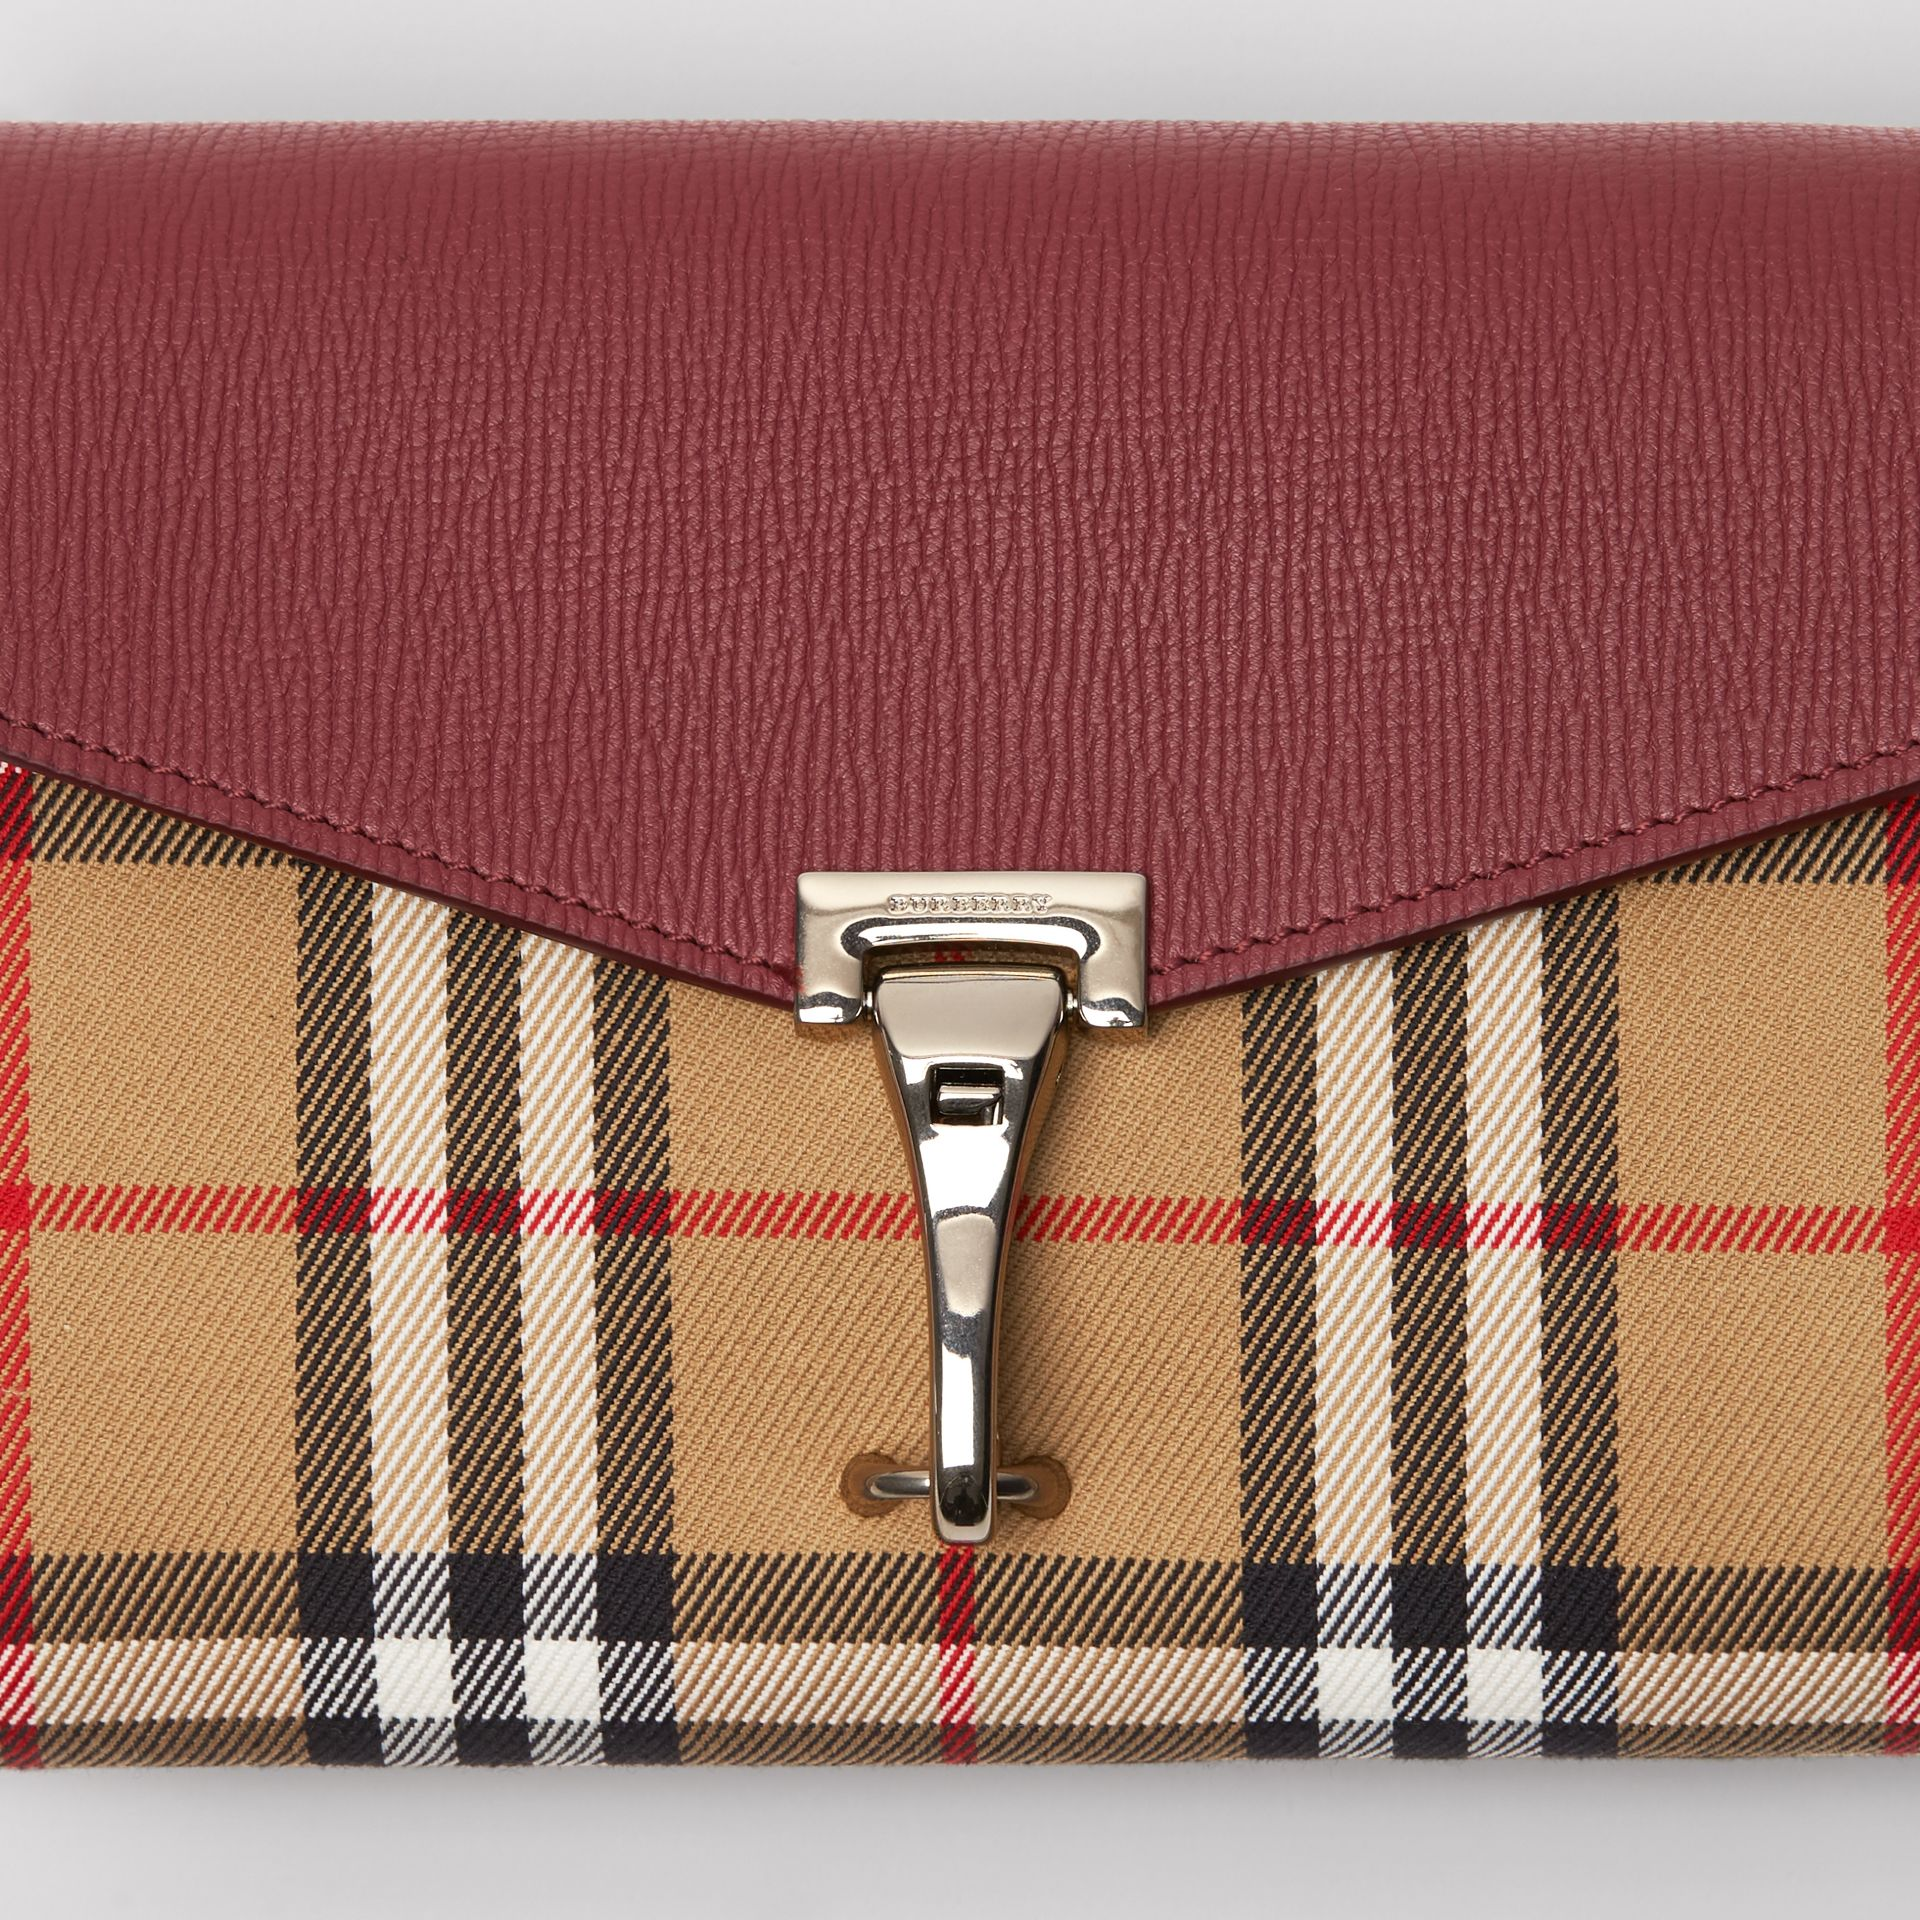 Mini Leather and Vintage Check Crossbody Bag in Crimson - Women | Burberry Australia - gallery image 1